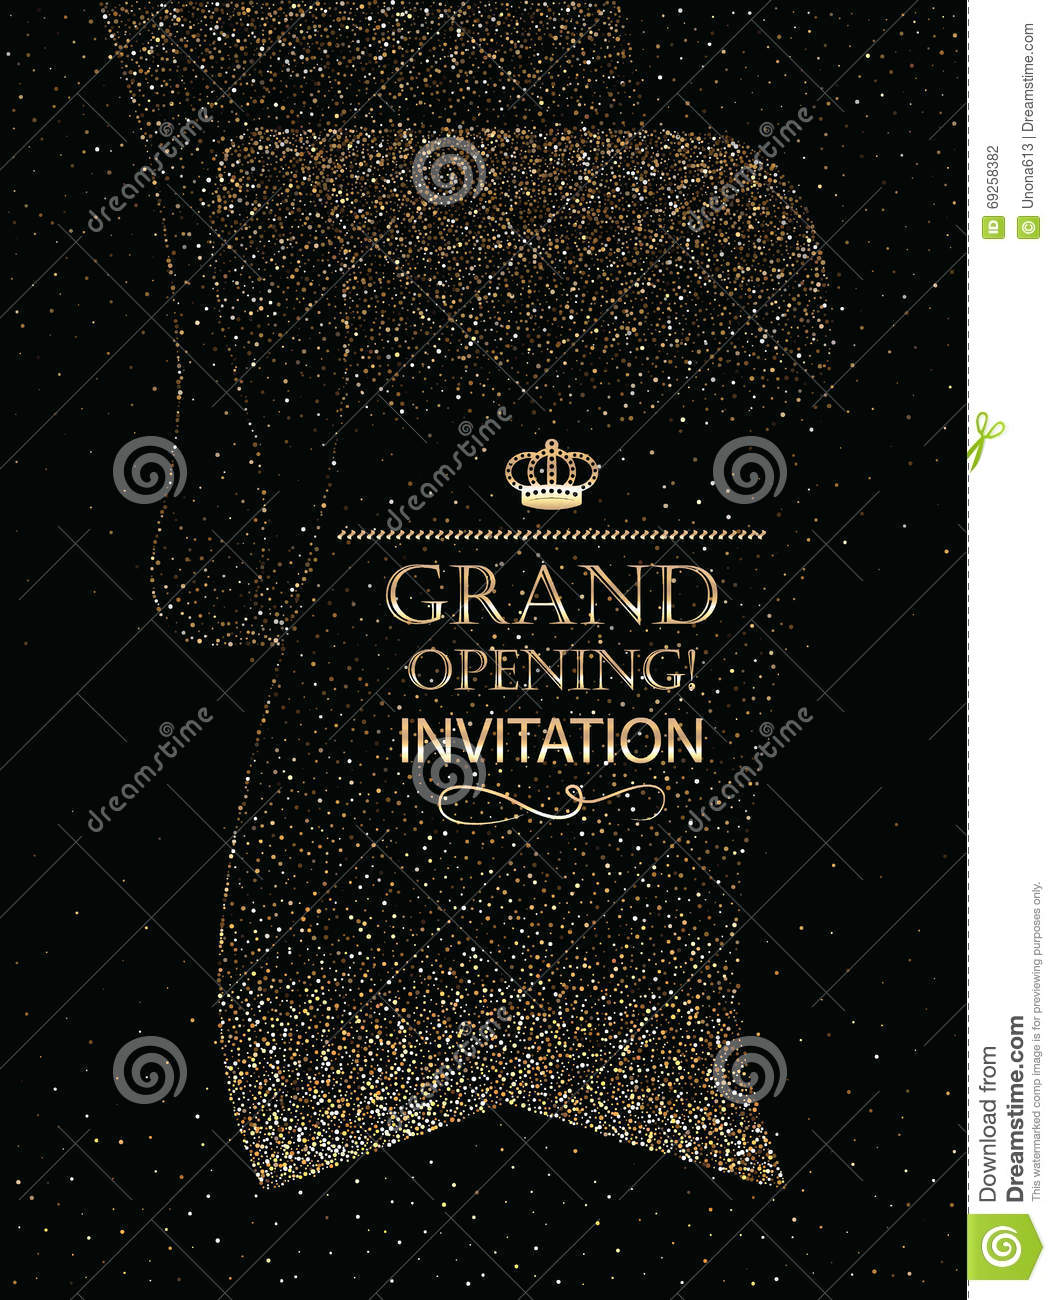 Grand Opening Invitation Card With Abstract Ribbon Stock Vector